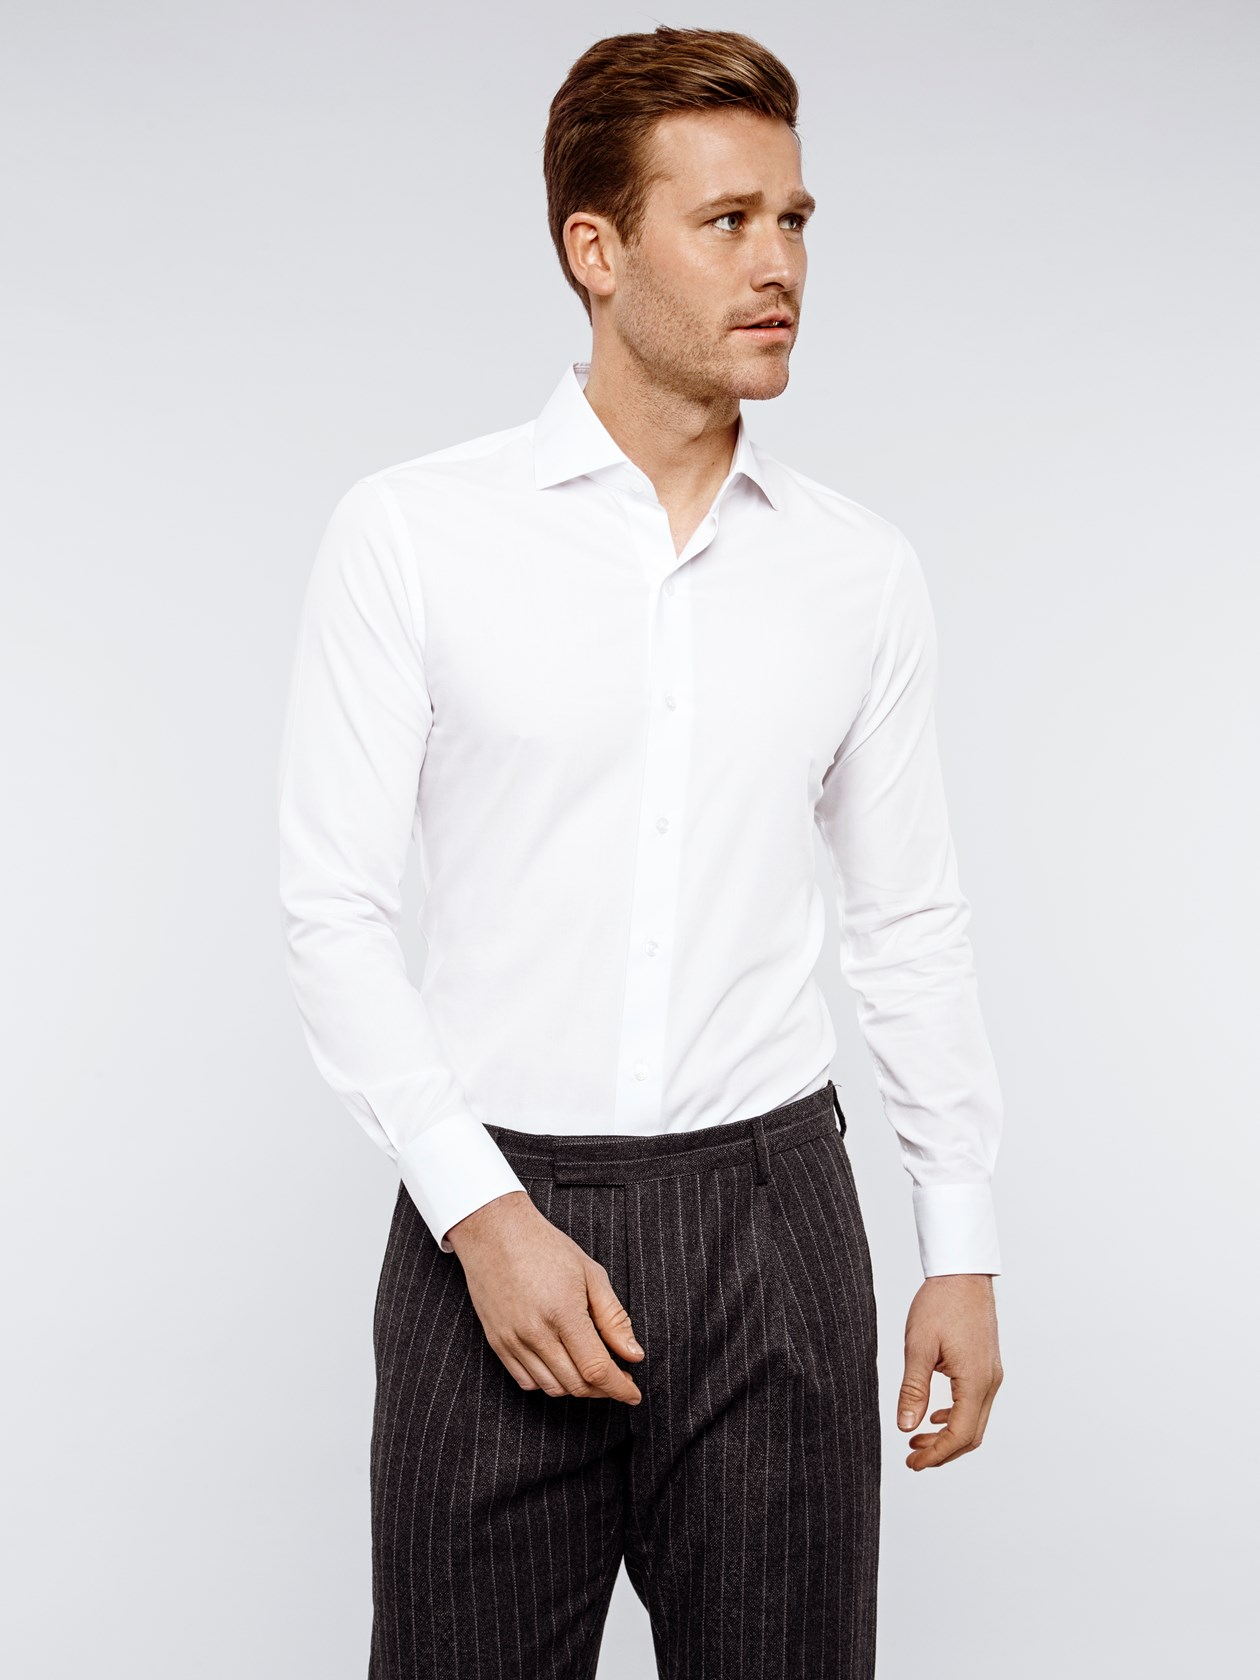 Bamboo Cotton - White Shirt